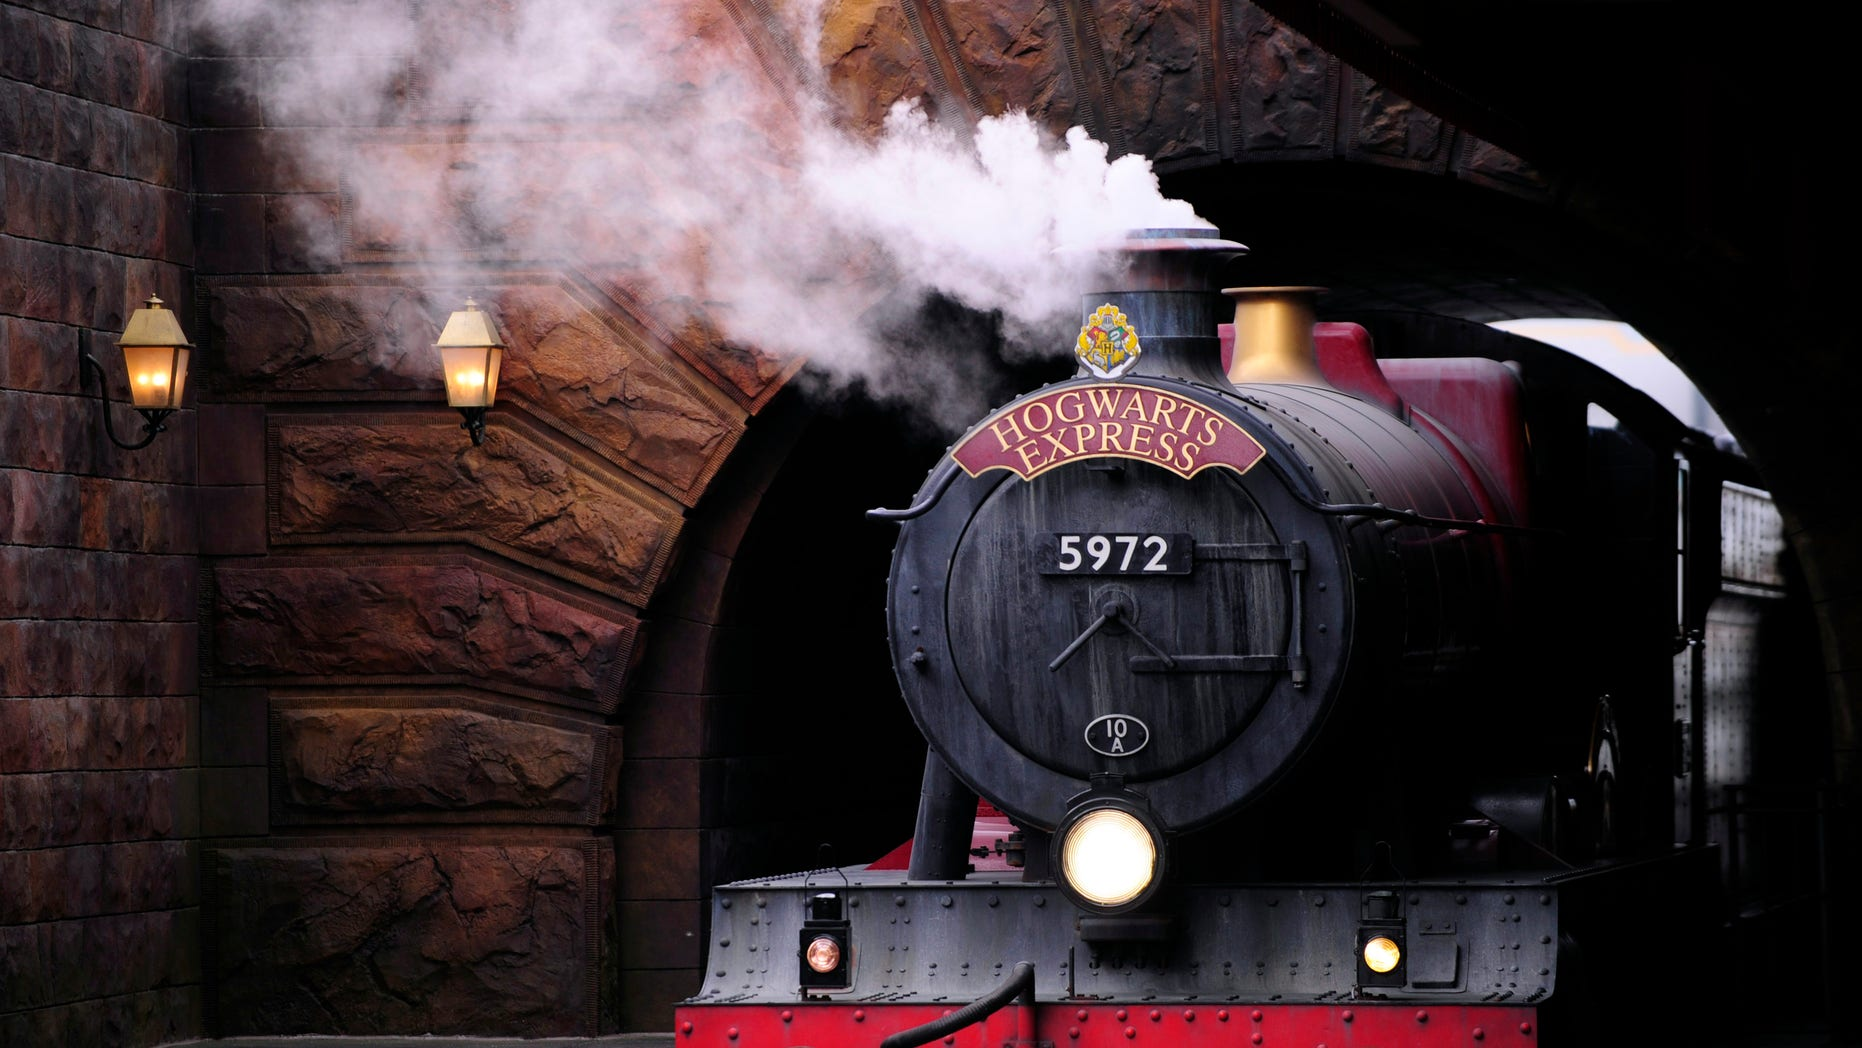 The Hogwarts Express train, which connects the Universal Studios with neighboring Islands of Adventure, pulls into the Hogsmeade Station during a media preview for The Wizarding World of Harry Potter-Diagon Alley at the Universal Orlando Resort in Orlando, Florida June 19, 2014.